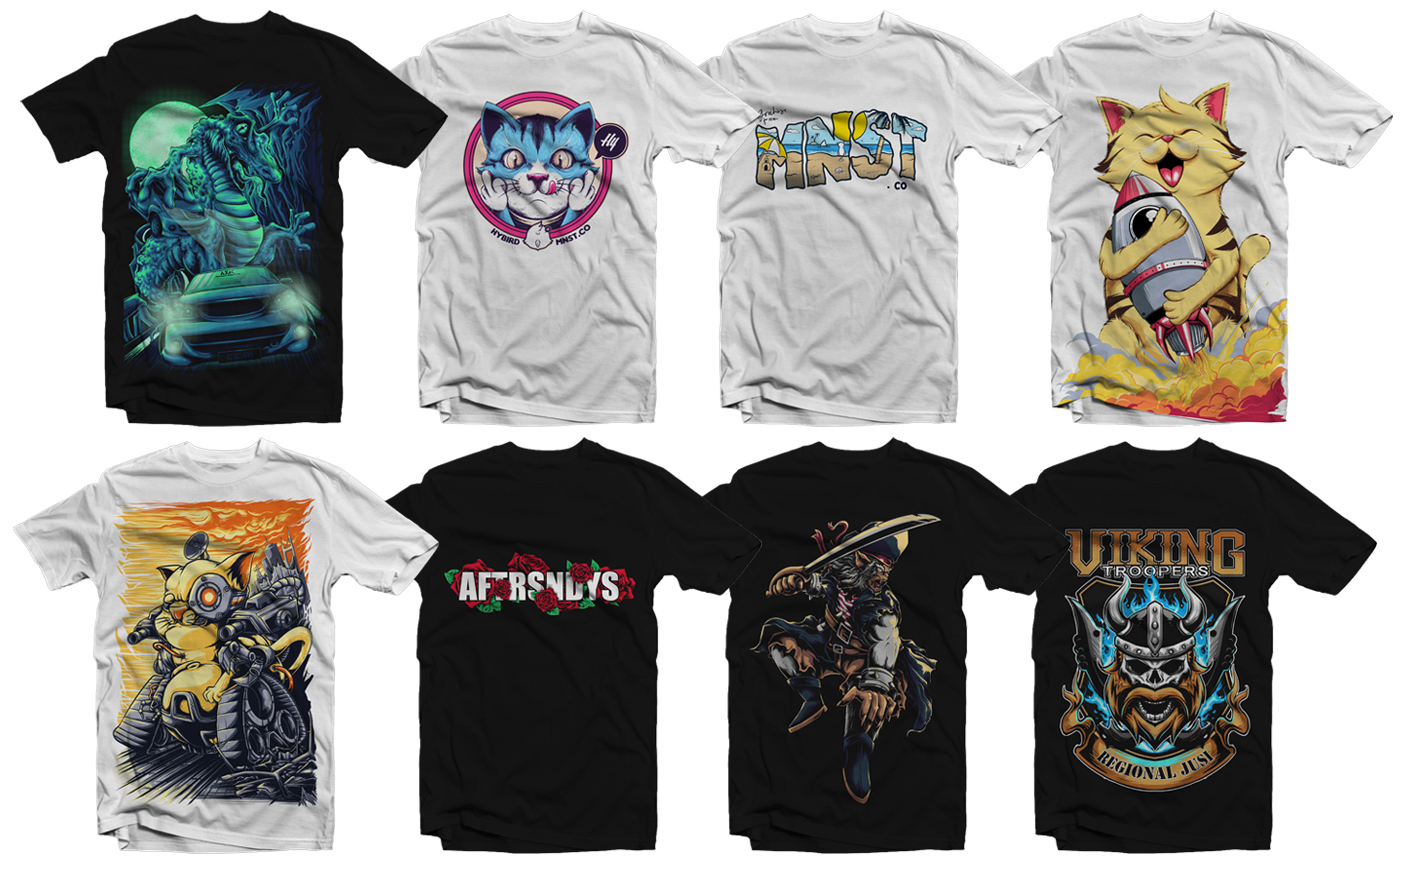 draw an illustration for your t-shirt merchandise